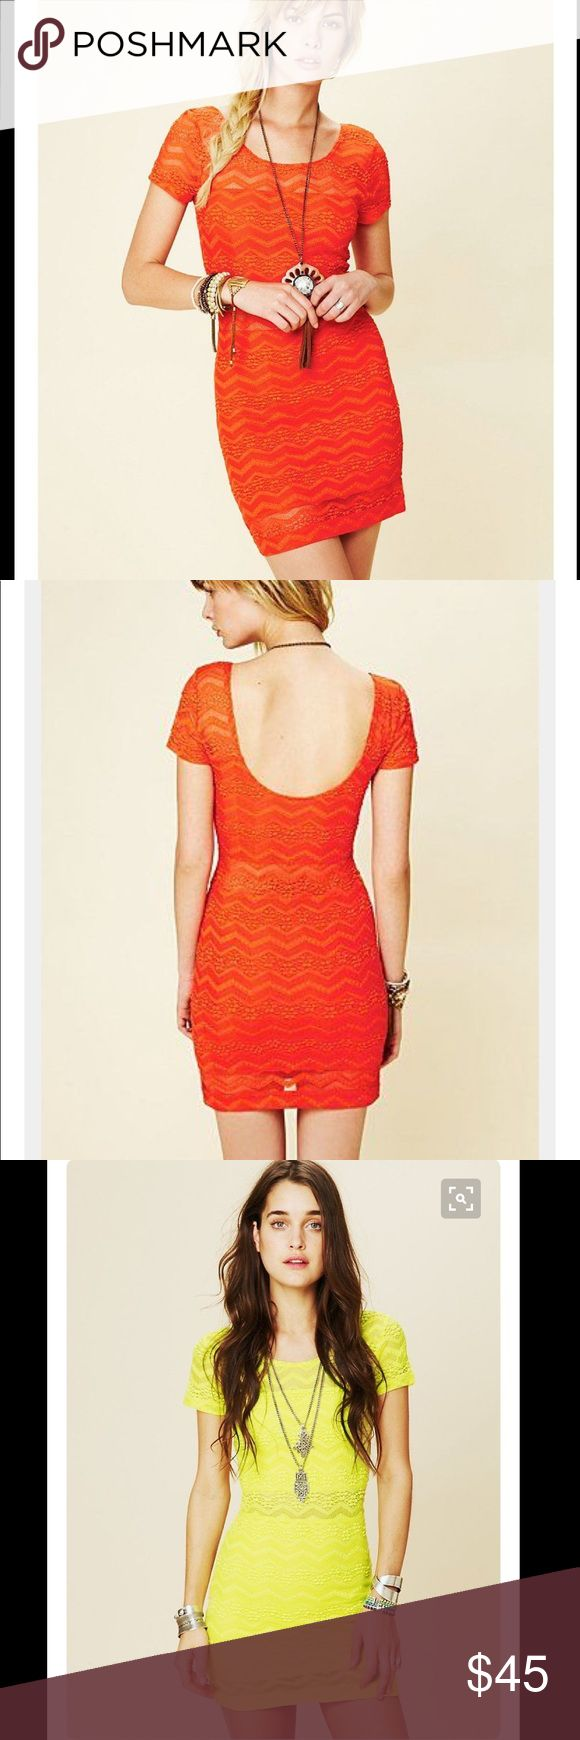 FREE PEOPLE-Geo Print Lace Bodycon In Orange! 🔥💋 FREE PEOPLE-Geo Print Lace Bodycon In Orange! 🔥💋 EUC. Only worn maybe once. Looks brand new! Gorgeous bright color!! Sexy lace & low back! This is the newest hot item!! So trendy & sexy!! Accentuates all your lovely curves!! Don't miss out on this great price!! No flaws that I am able to detect! No stains, pulls, odors or tears! Pet/Smoke Free Home!! Absolutely gorgeous!! Bundle & Save!! 😊💖🔥💋🤤🤘🏼⭐️👑🌈 Free People Dresses